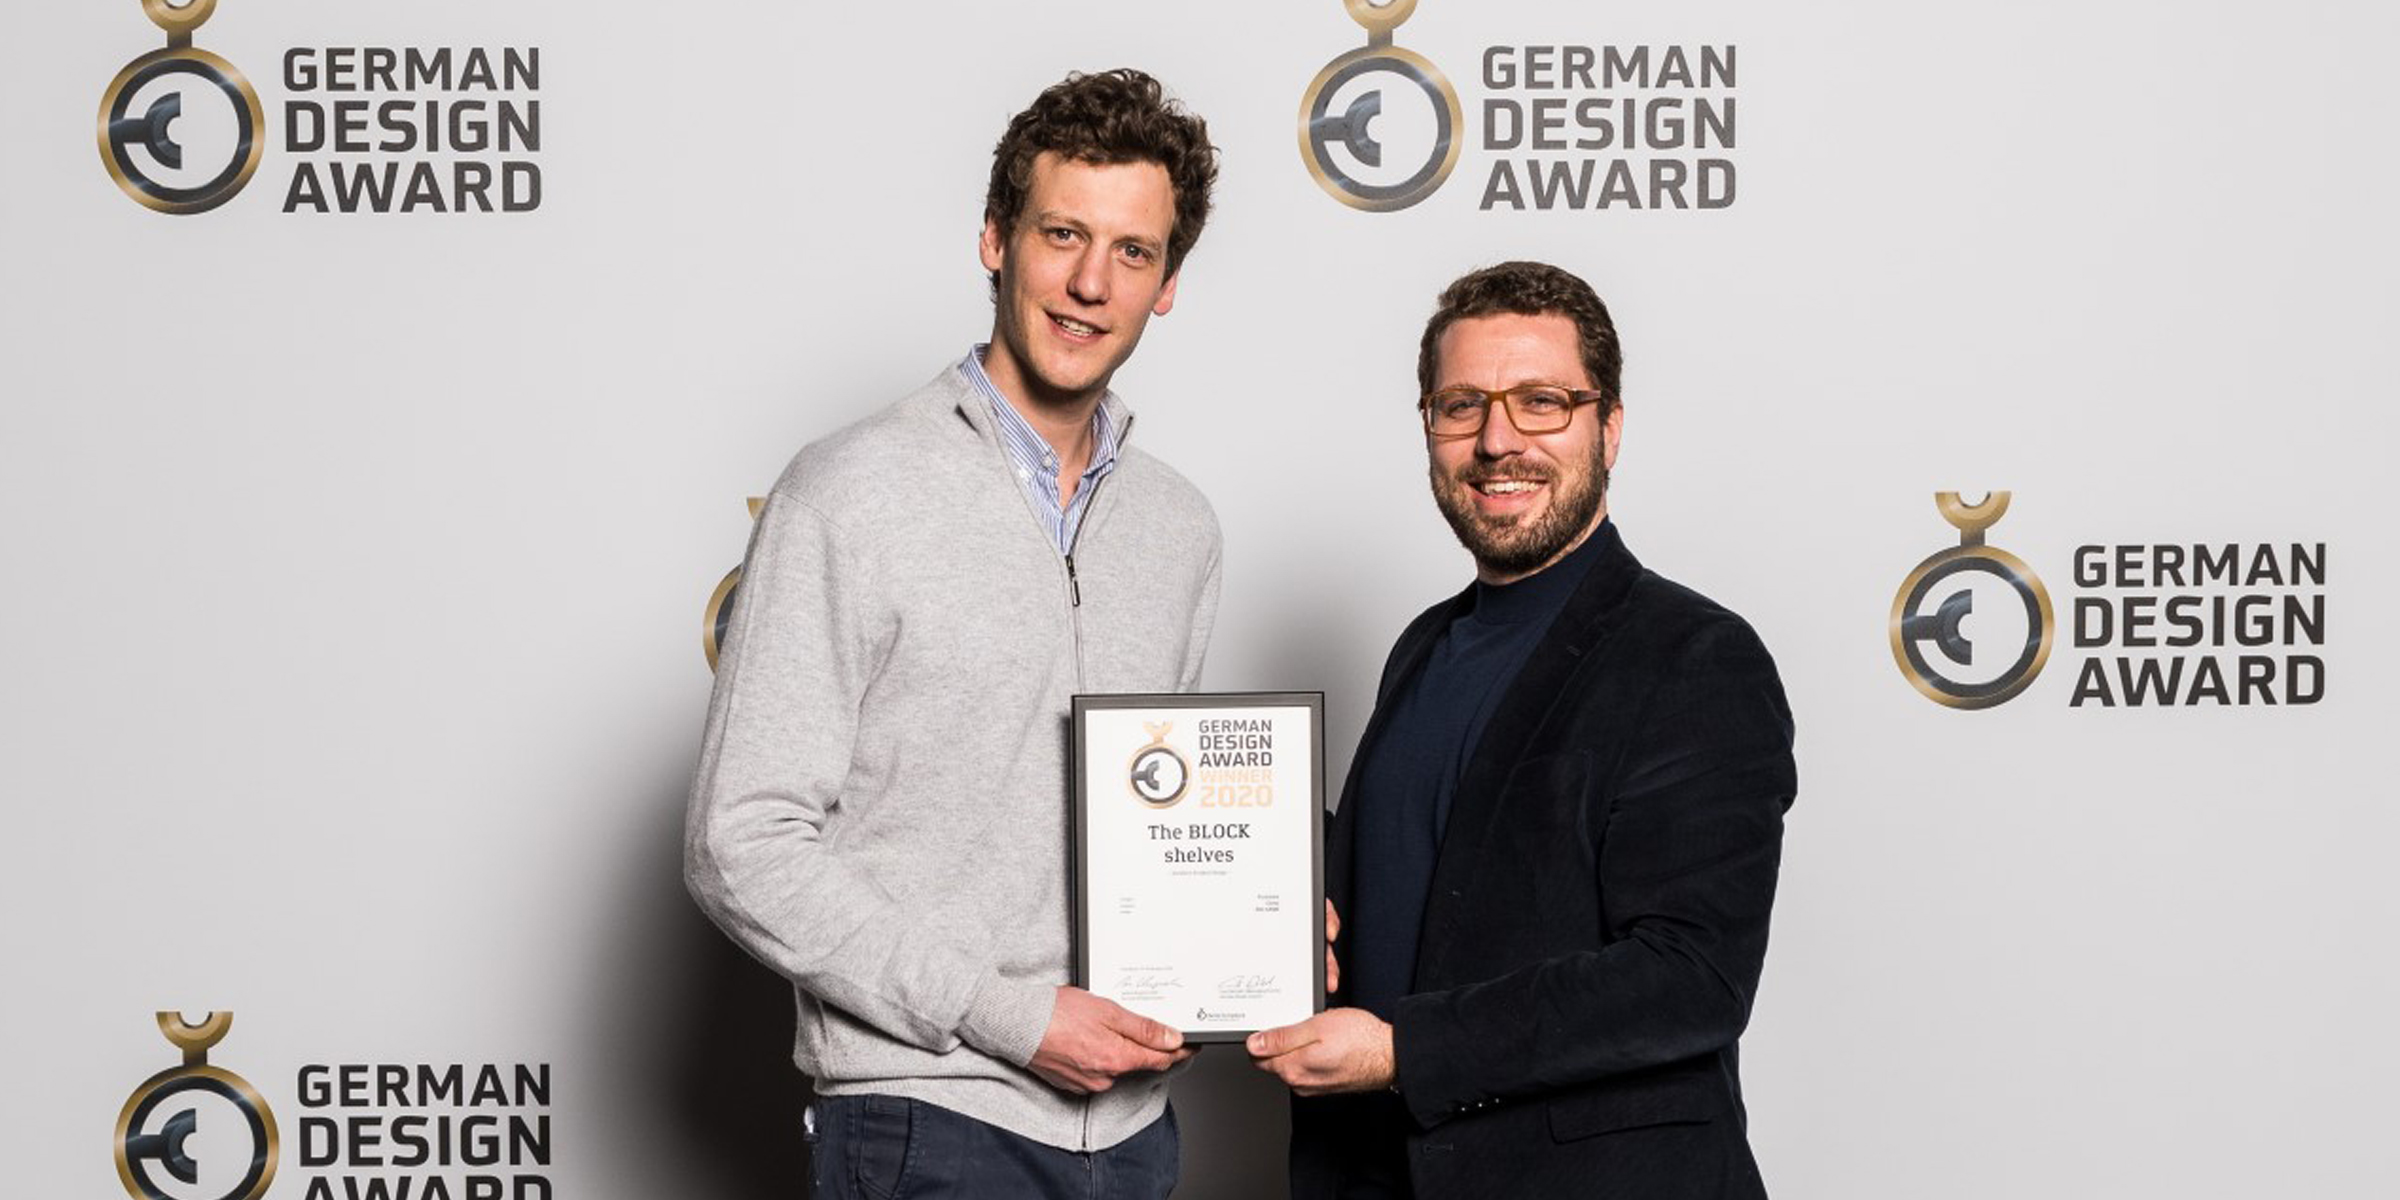 BLOCK shelving system by BIG GAME awarded a German Design award in Frankfurt, Germany.